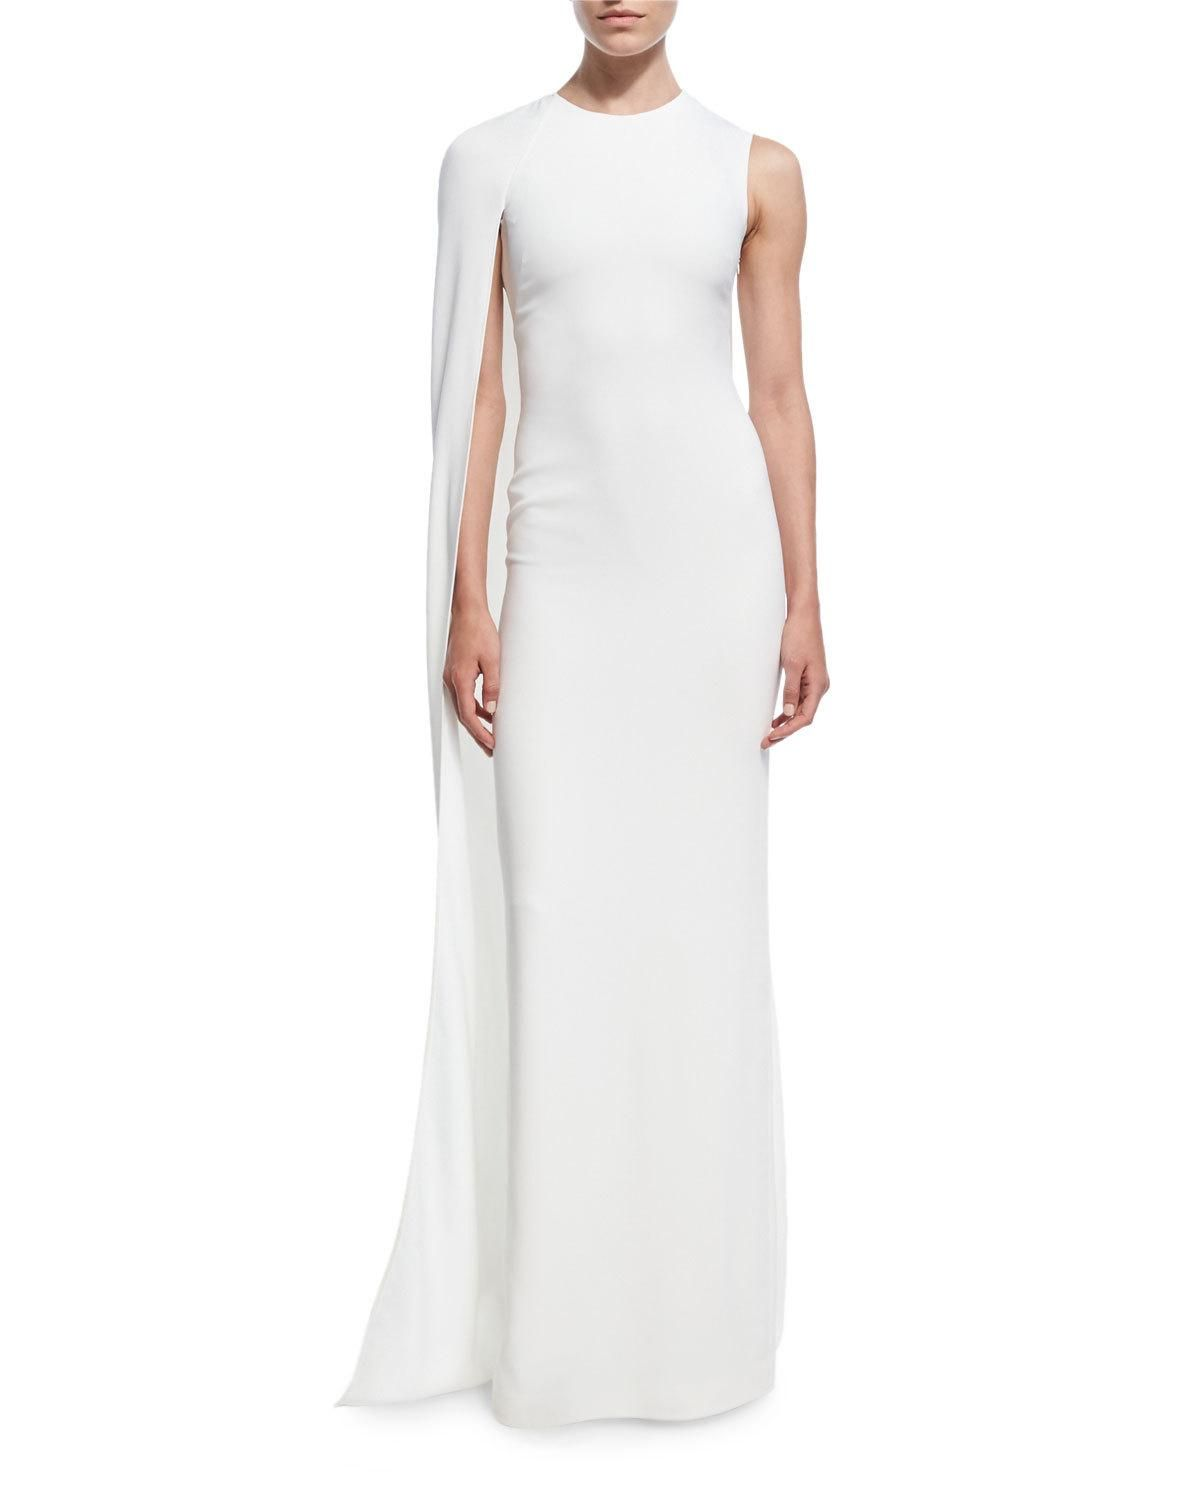 Stella Mccartney Cecilia One Shoulder Cape Gown White Evening Dress Winter Wedding Dress White Fitted Dress [ 1500 x 1200 Pixel ]